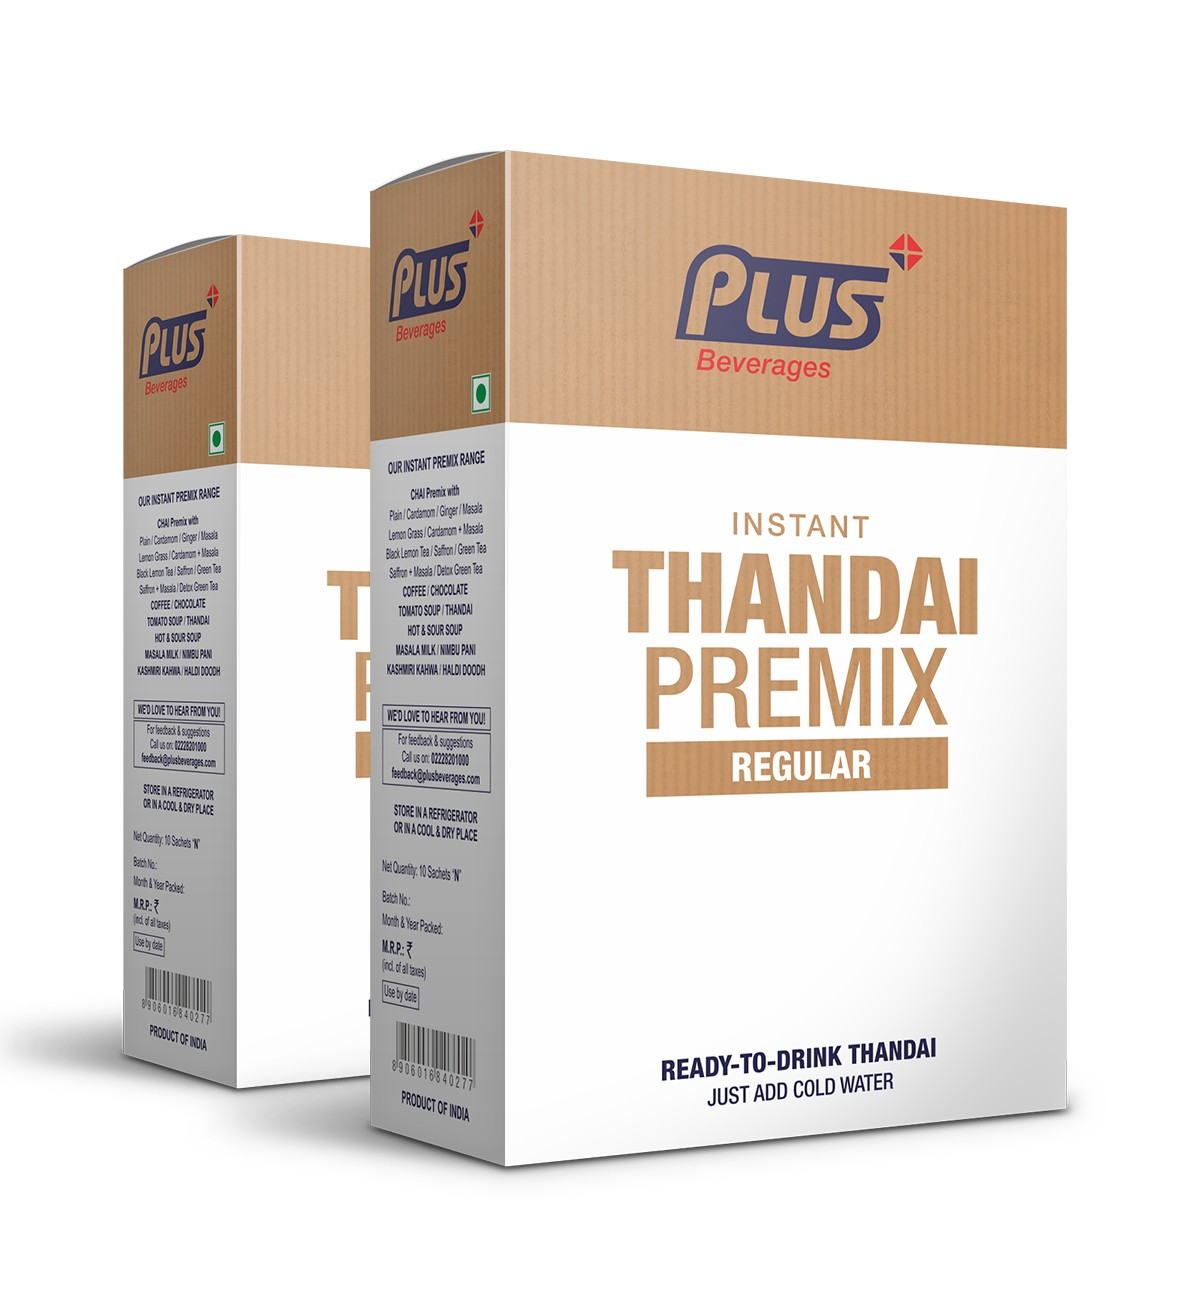 Get Instant Thandai Premix at best price - Free Shipping | Plus Beverages